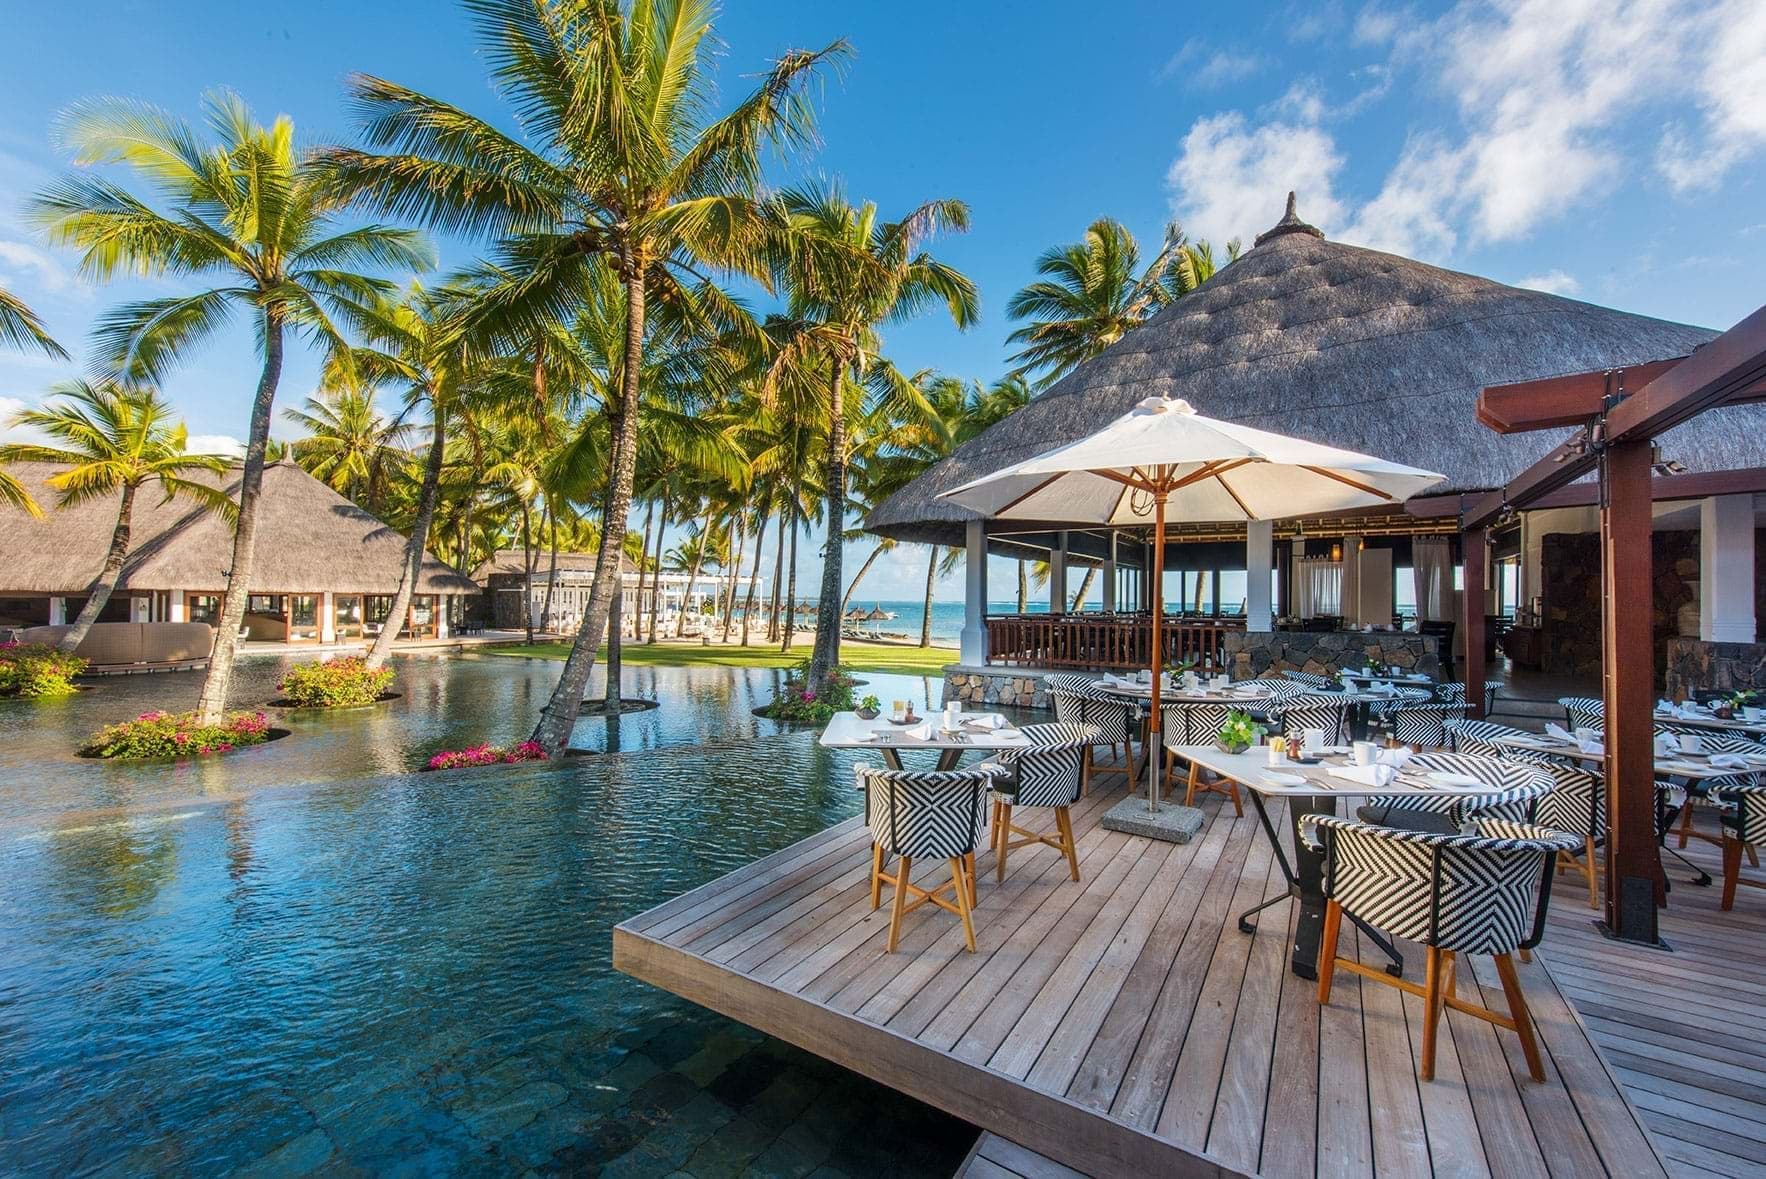 La Citronelle Restaurant| Sunny Breakfast at Constance Belle Mare Plage